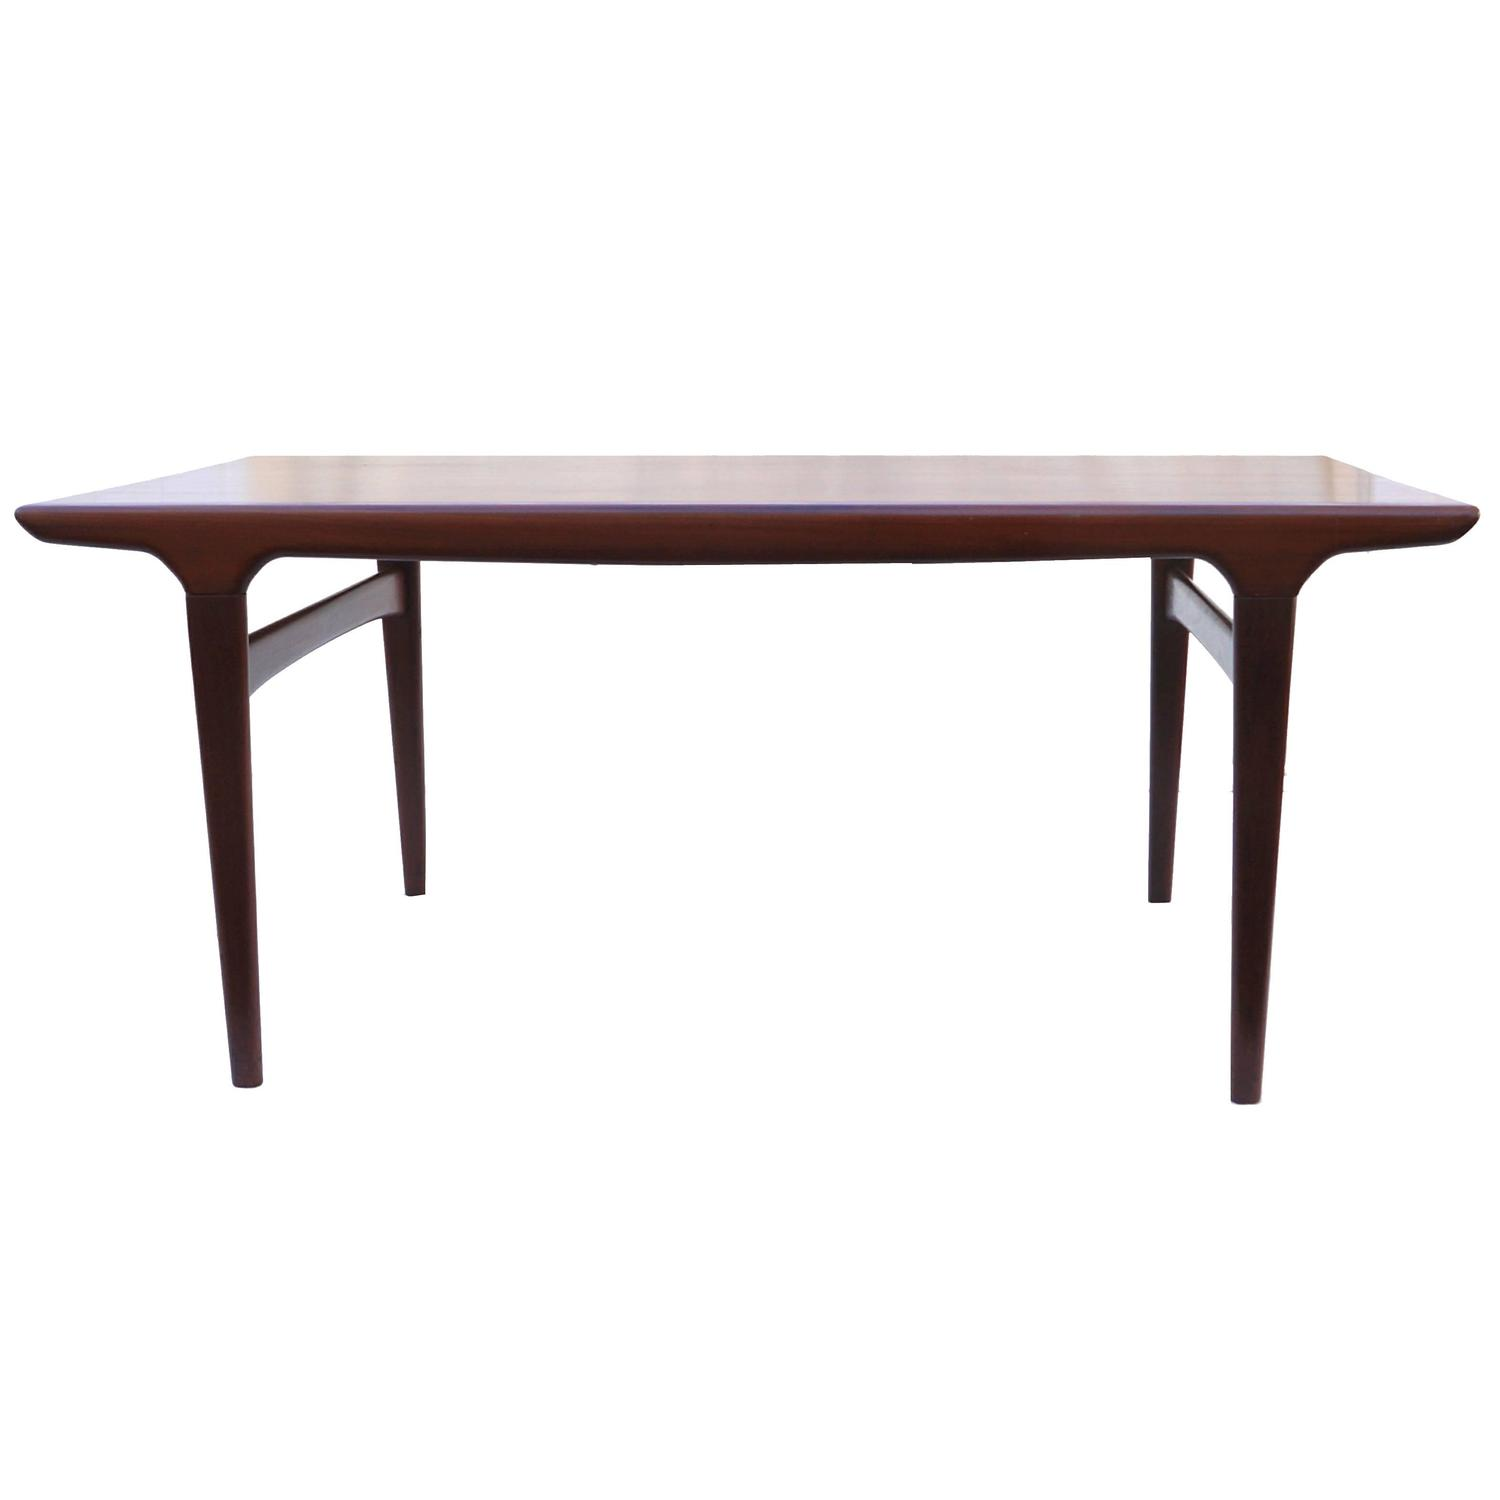 Johannes andersen dining table stow away leaf and legs at for Stowaway dining table